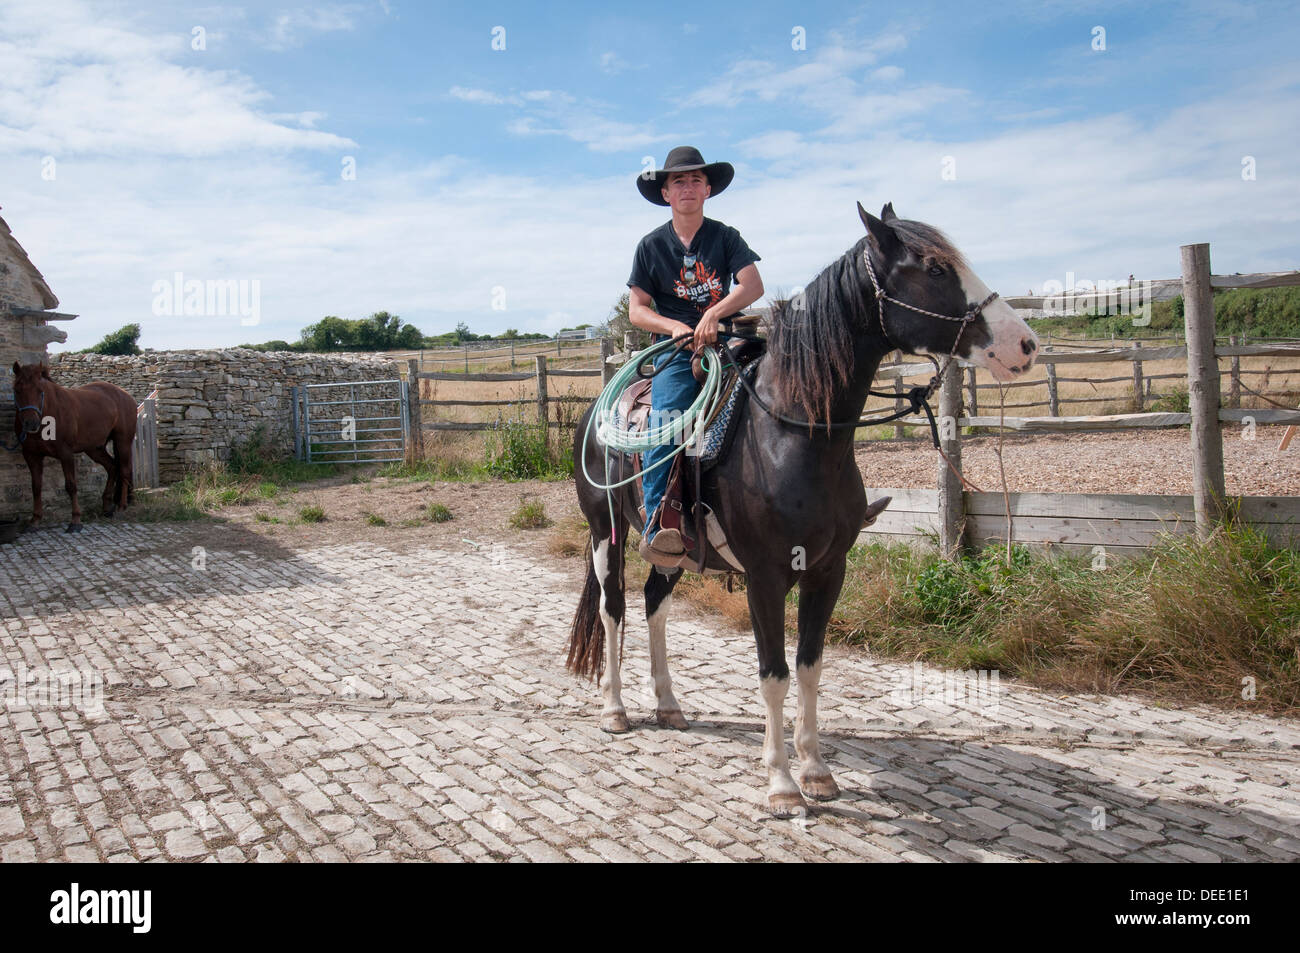 young cowboy sitting on a horse with a lasso - Stock Image